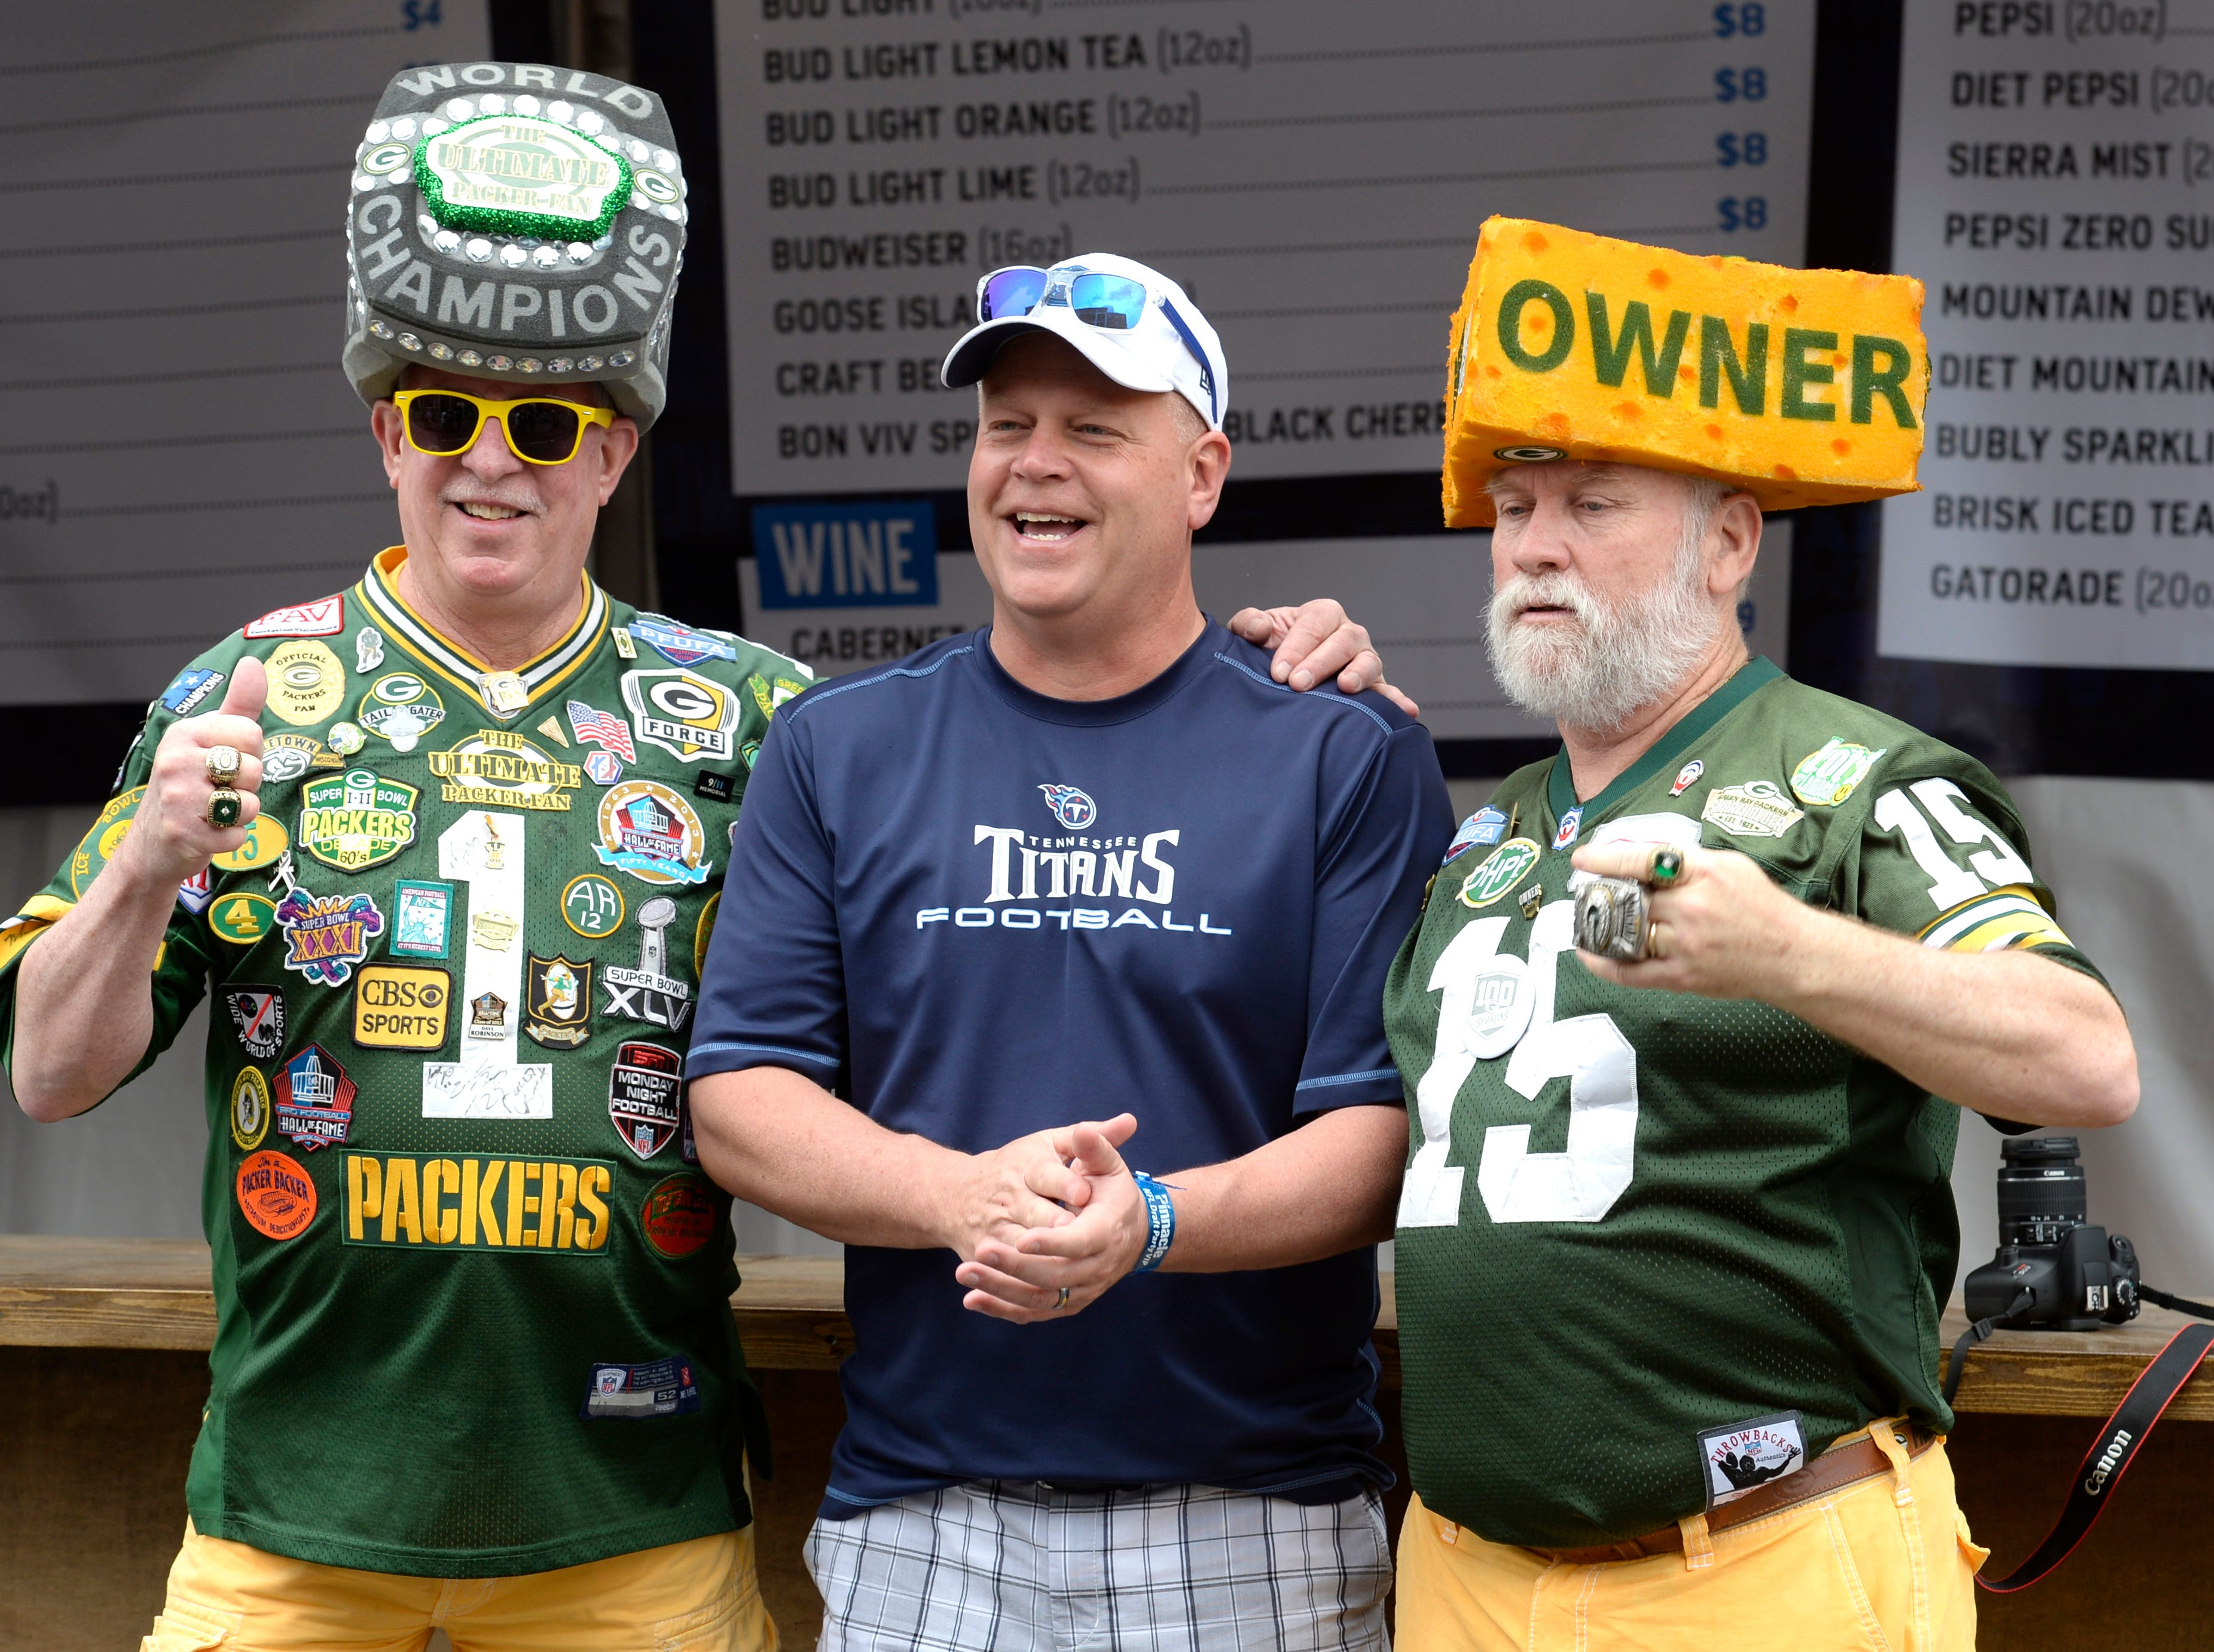 Steve Tate, David Dolleris and Wayne Sargent show off their favorite teams before the start of the 2019 NFL Draft on Lower Broadway  in Nashville, Tenn., Thursday, April 25, 2019.